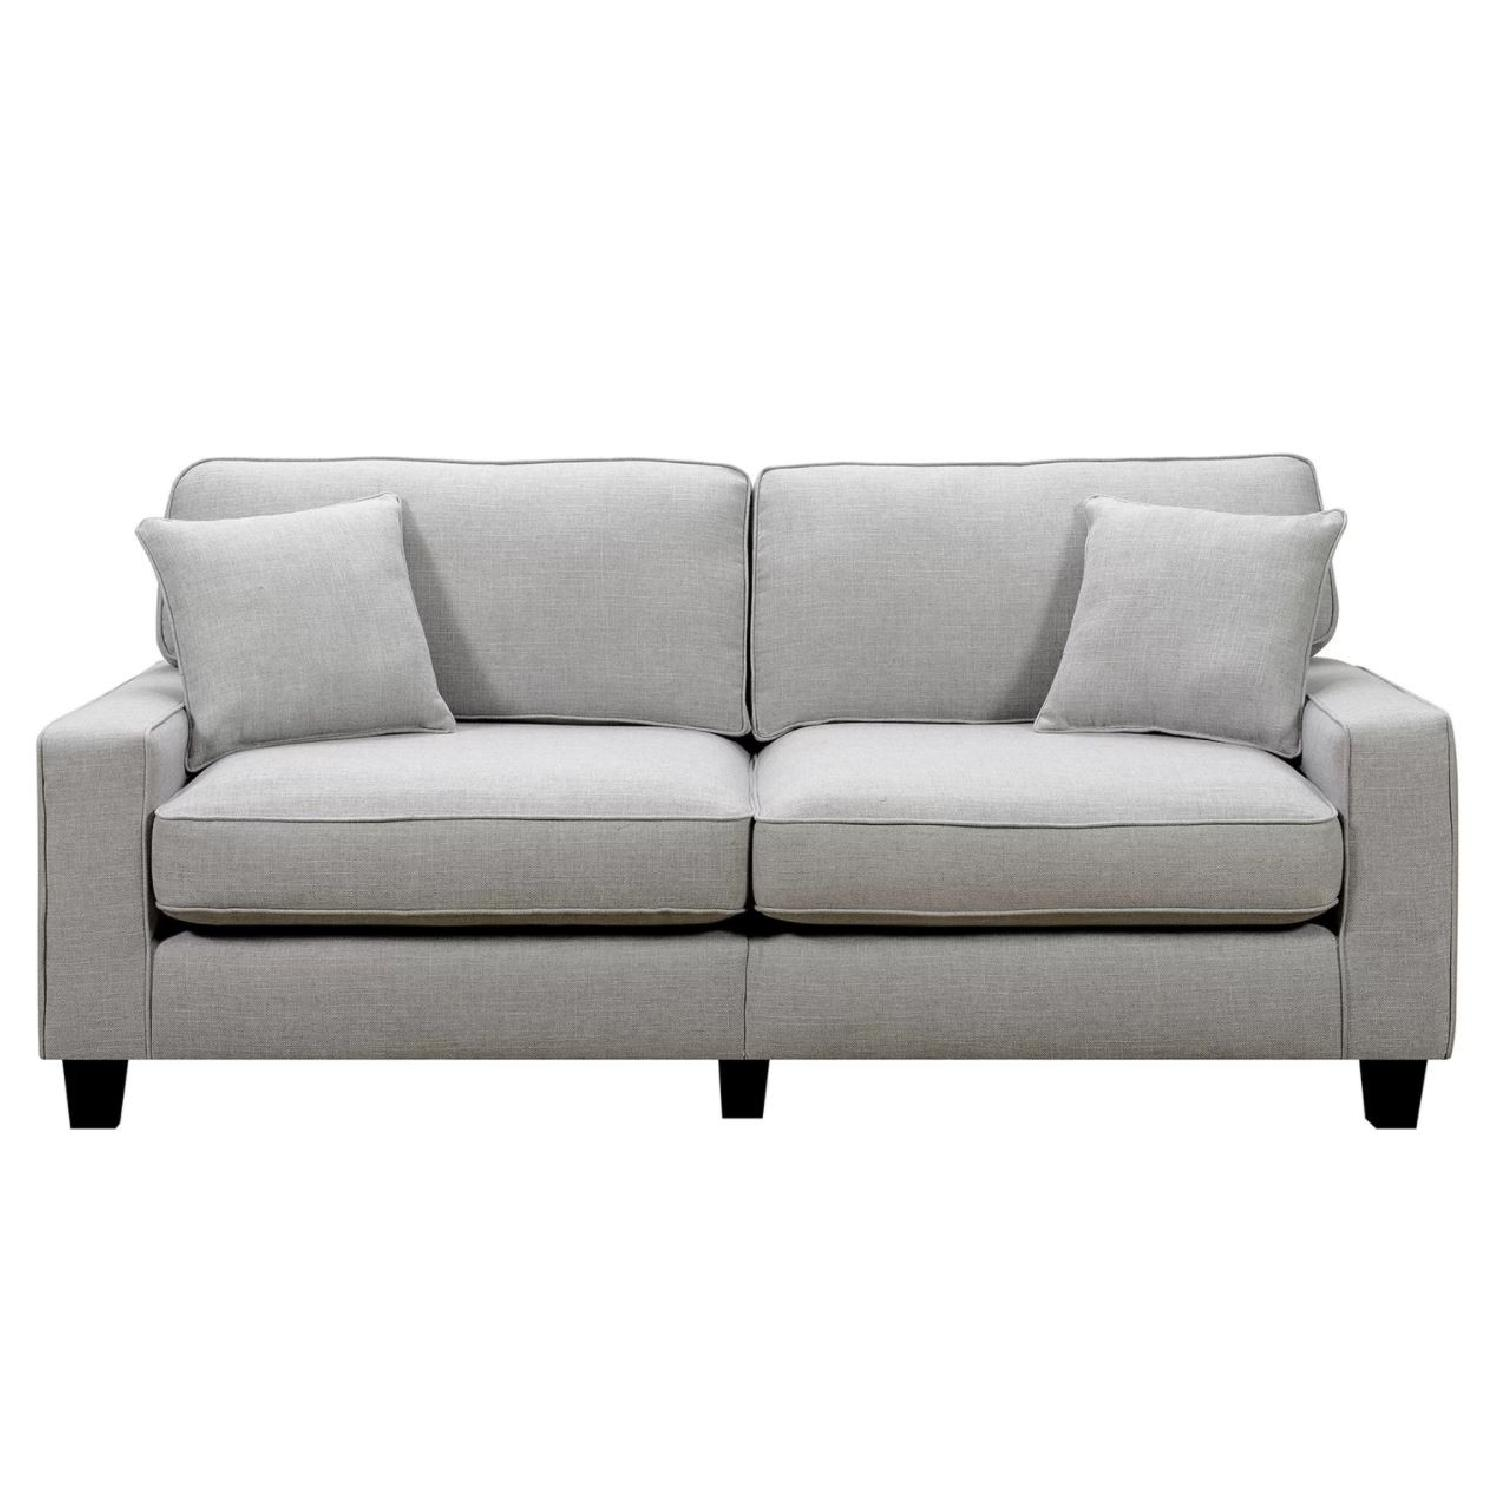 Birch Lane 2 Seater Sofa AptDeco